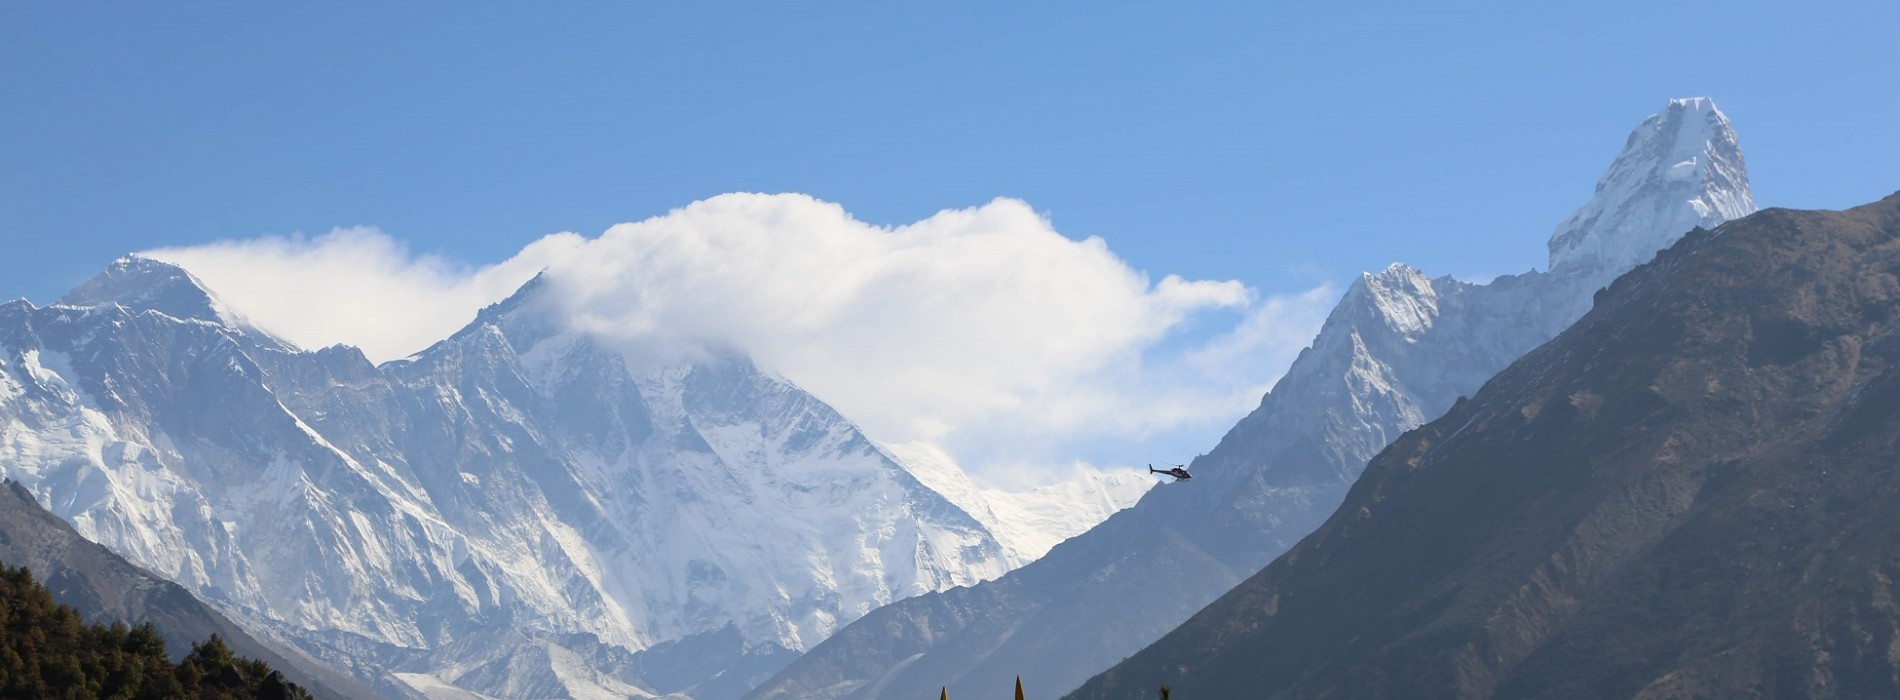 Breathtakingly beautiful scenery on the Everest Base Camp Trek